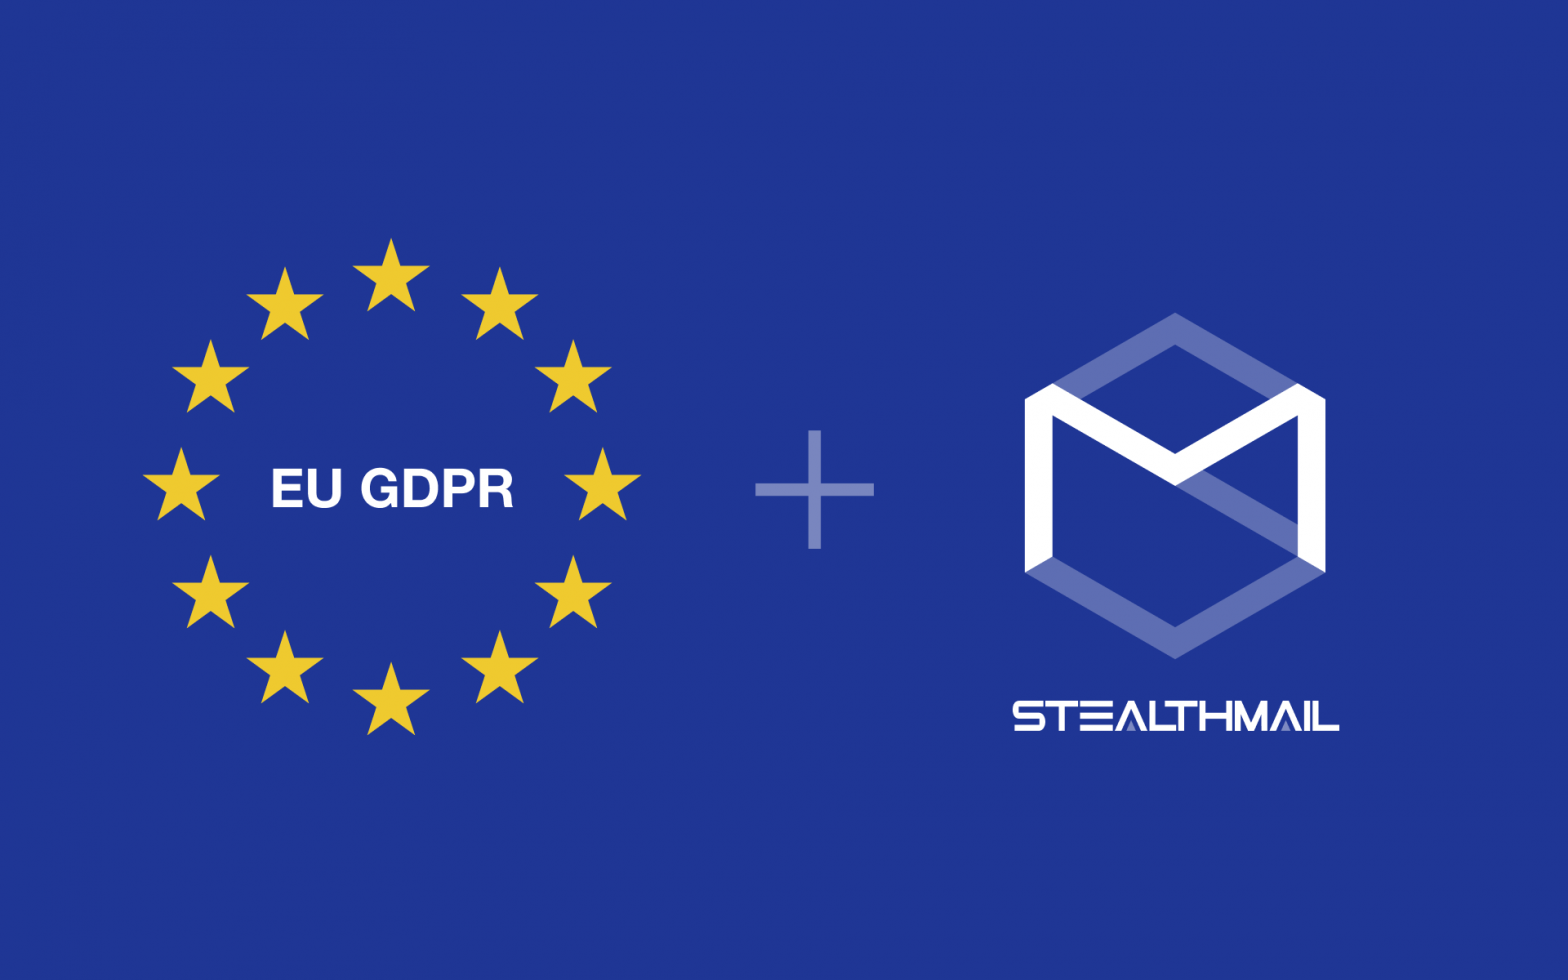 StealthMail's Expanded Email Security and Compliance Solution Helps Companies Address Unforeseen GDPR Violation Risks